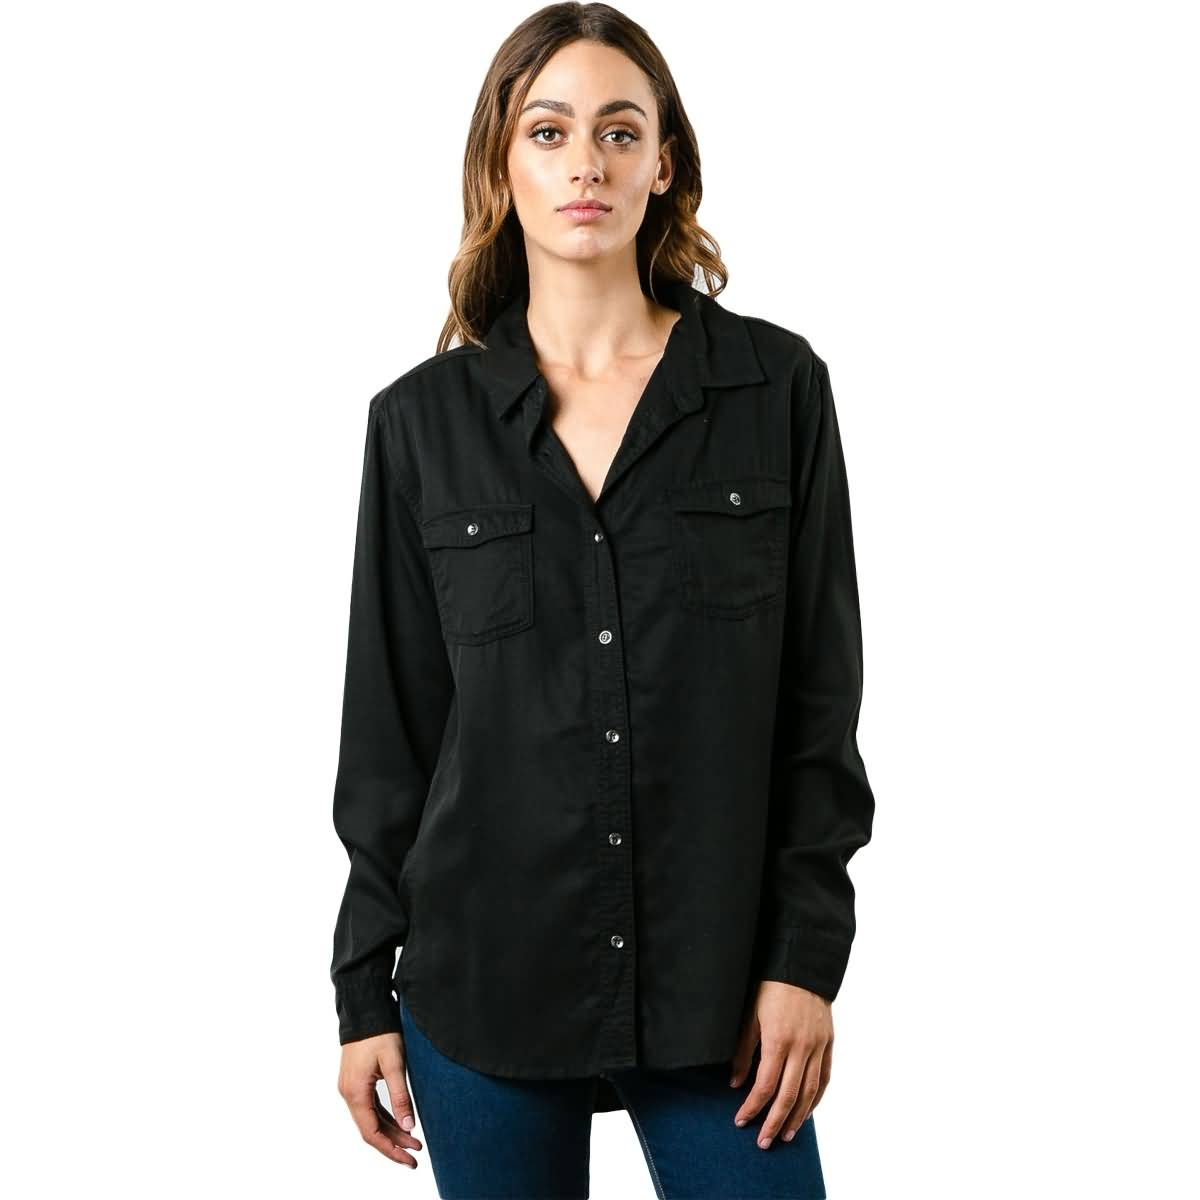 Rusty Perspective Women's Button Up Long-Sleeve Shirts-WSL0518